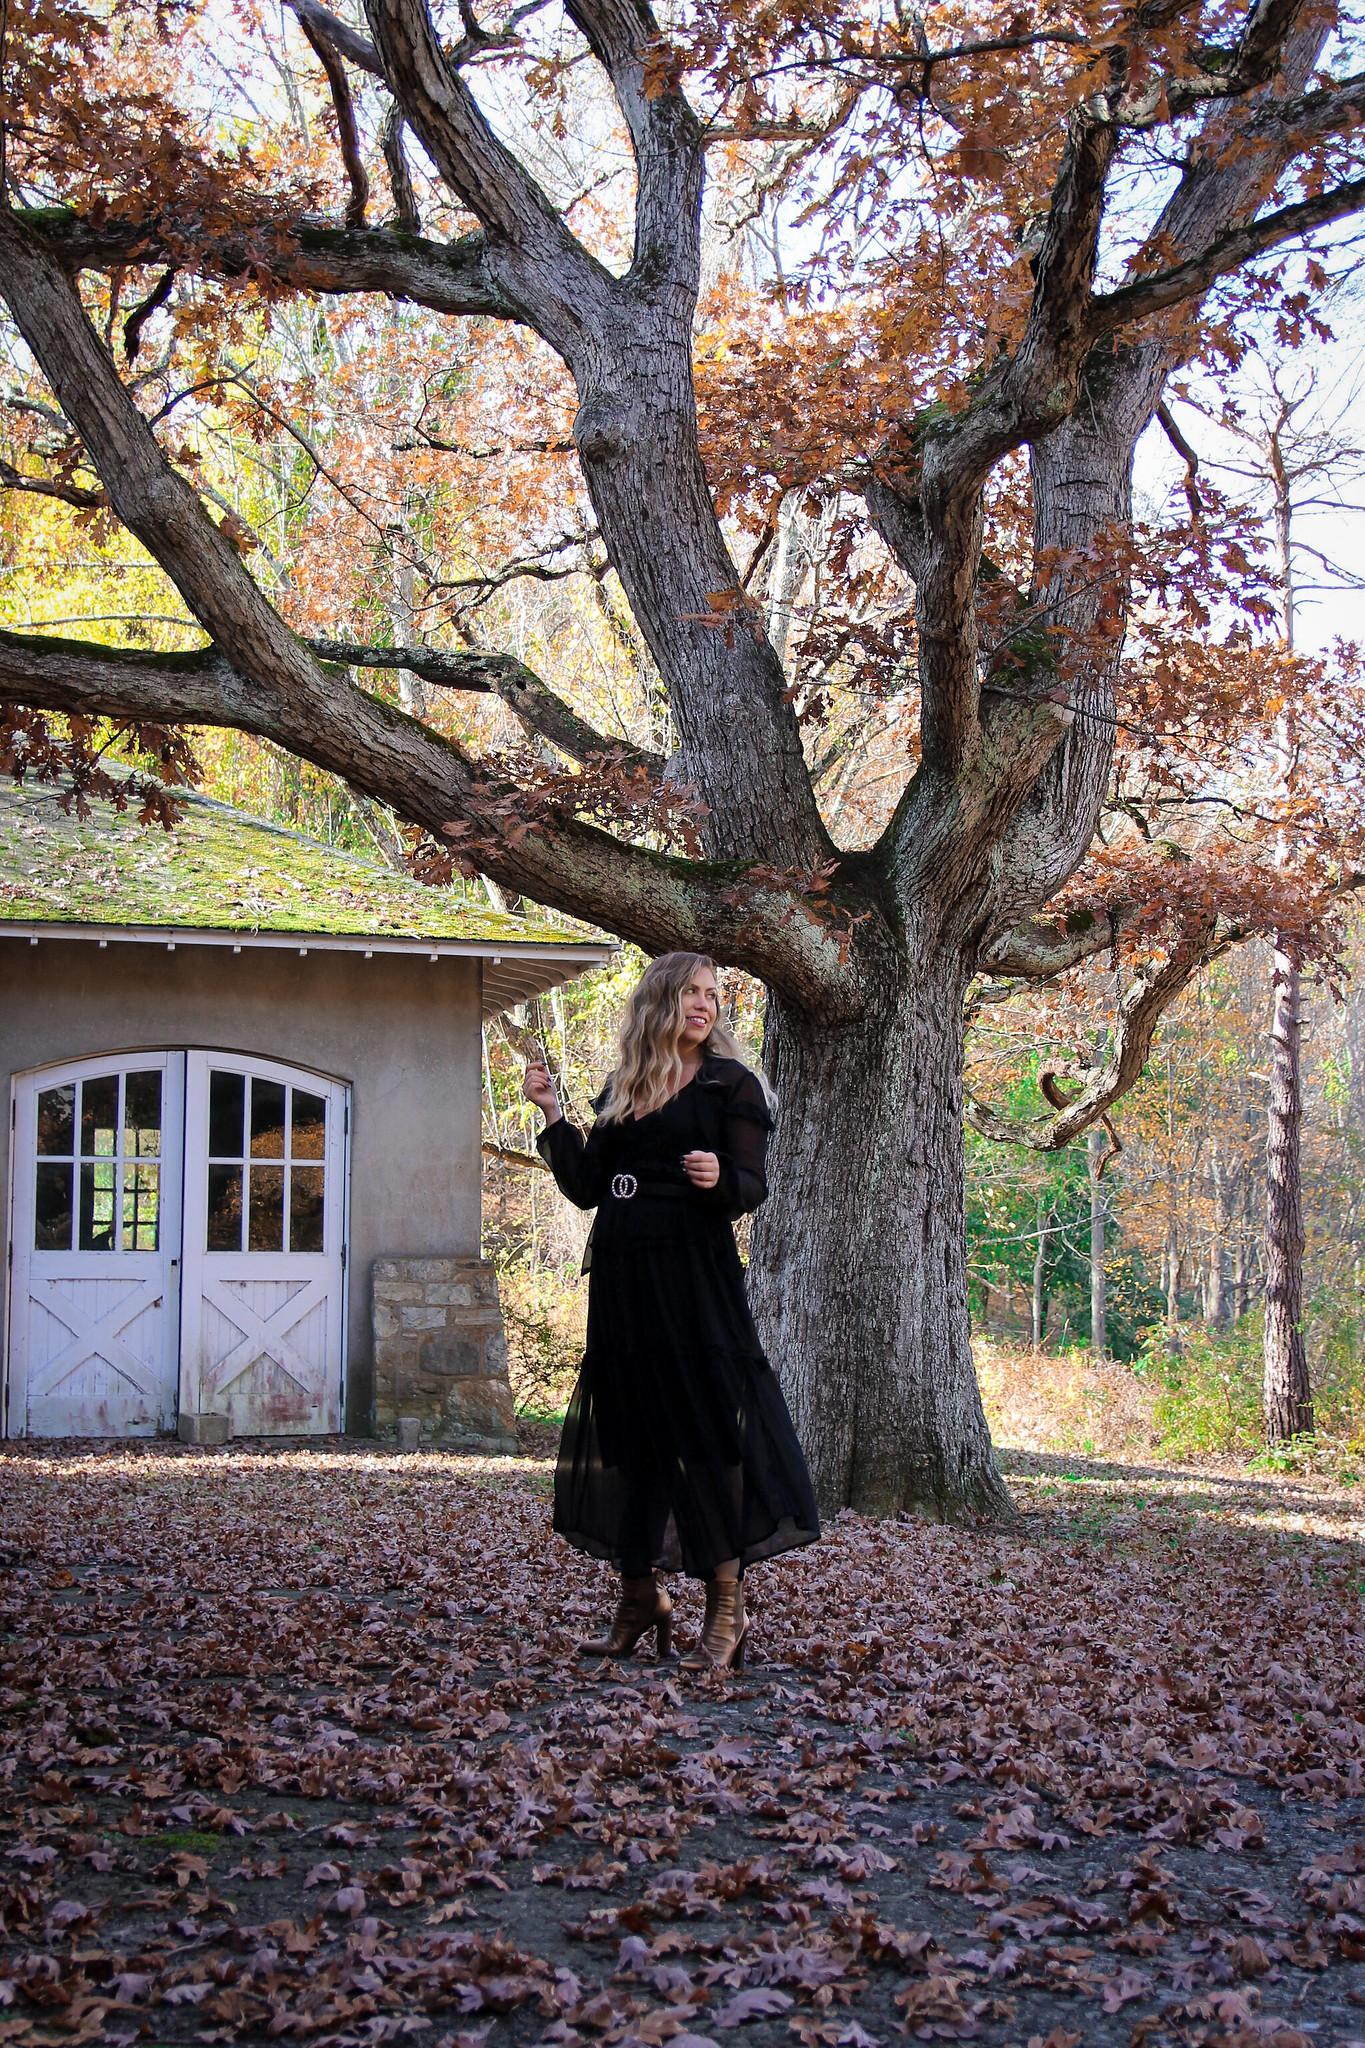 Long Black Sheer Dress Fall Photoshoot in New York | Fall Foliage | Westchester County NY Merestead | Whimsical Photoshoot Inspiration